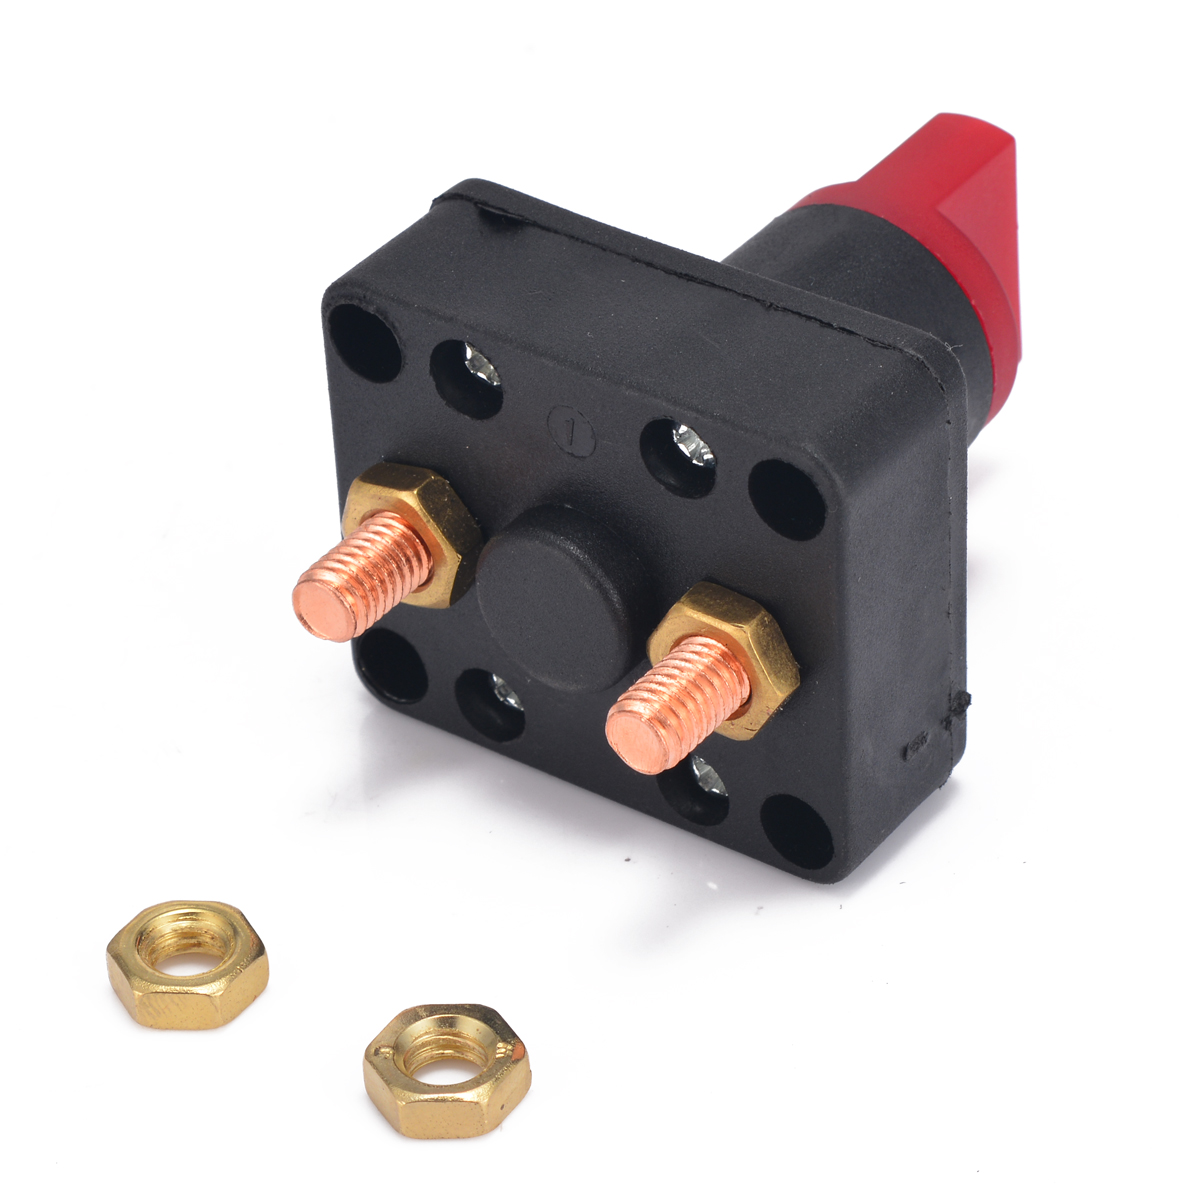 Ambitious 10a Fuse Holder Socket Male Connector 10a 250vac 3 Pin Iec320 C14 Inlet Connector Plug Power Socket With Red Lamp Rocker Switch Electrical Sockets